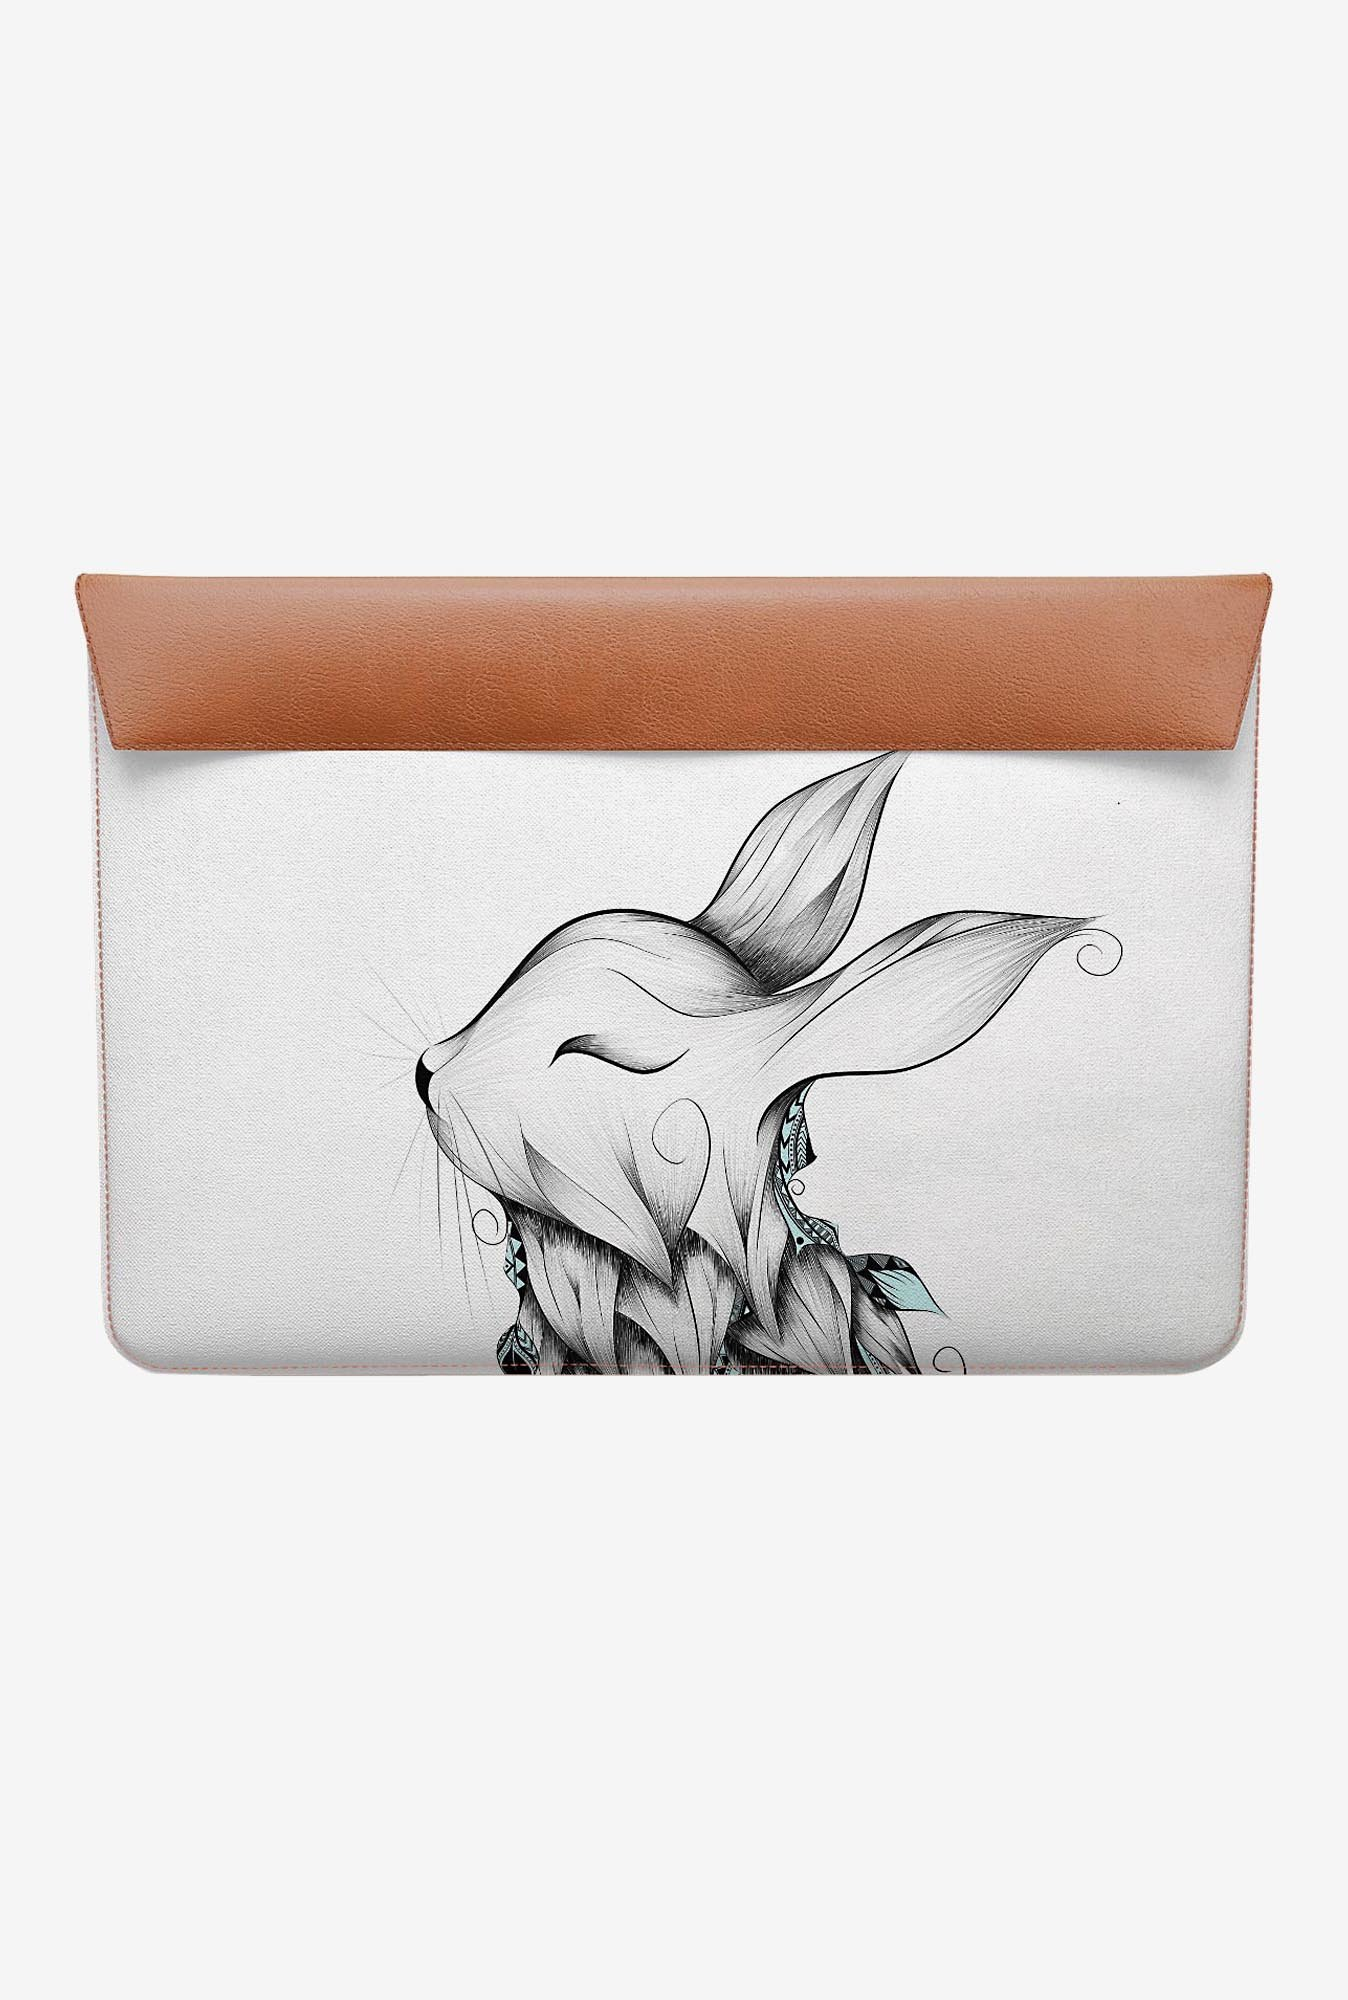 DailyObjects Poetic Rabbit MacBook Air 11 Envelope Sleeve